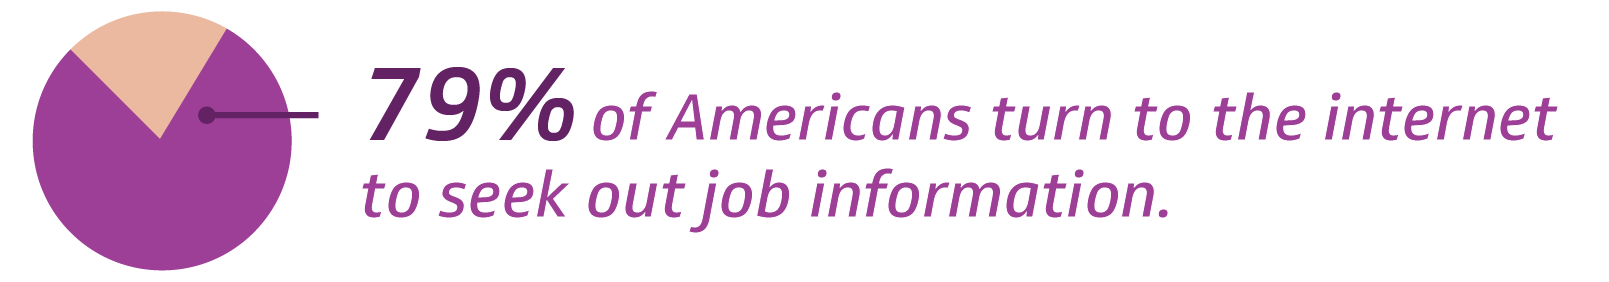 79% of Americans turn to the internet to seek out job information